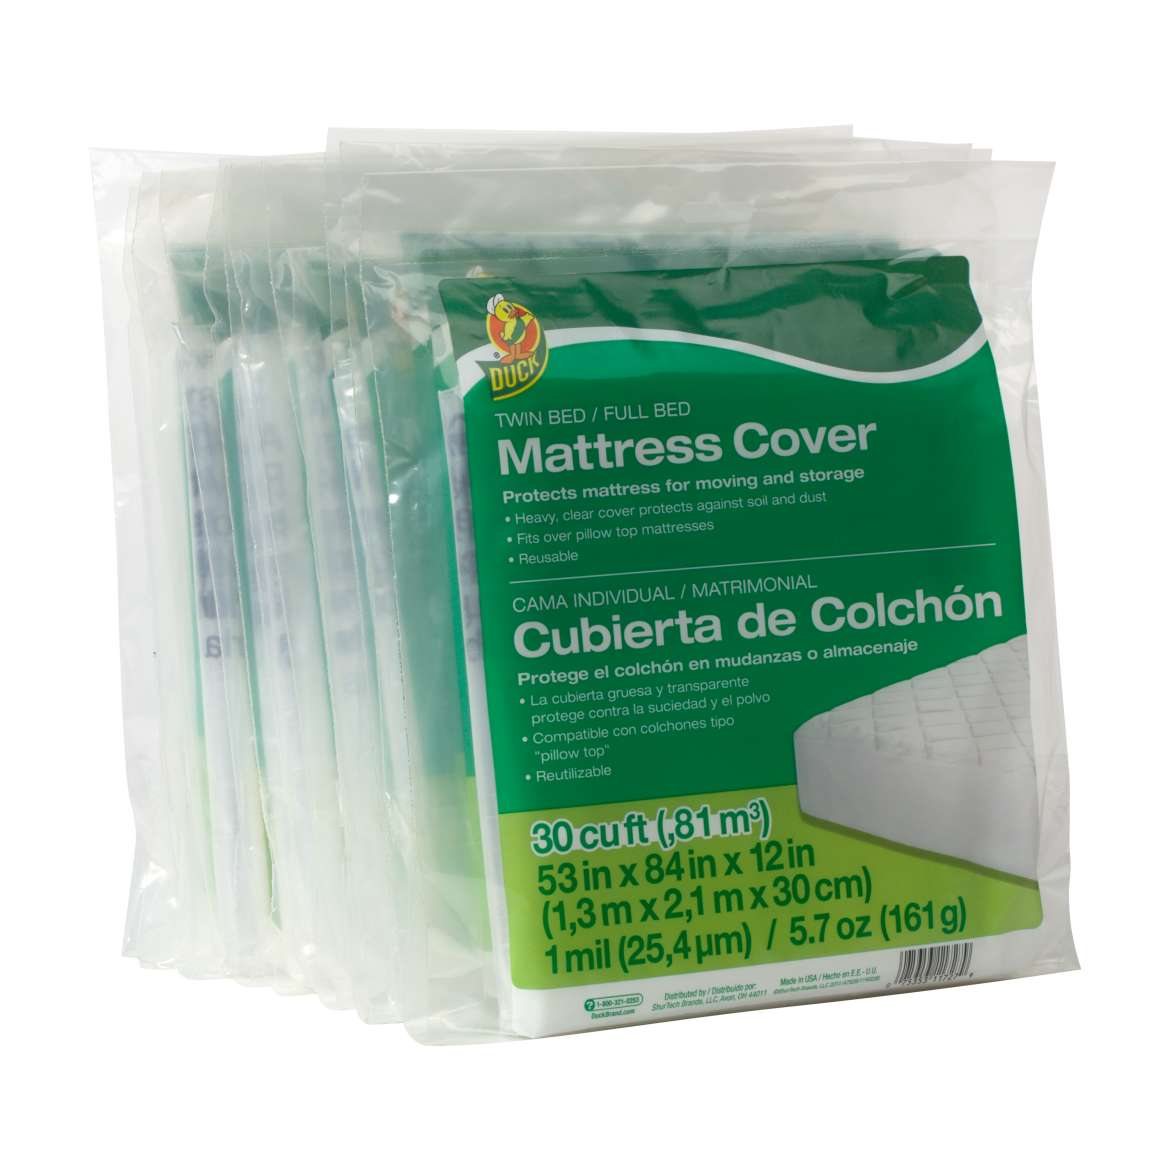 Duck® Brand Twin/Full Mattress Cover - Clear, 53 in. x 84 in. x 12 in. Image